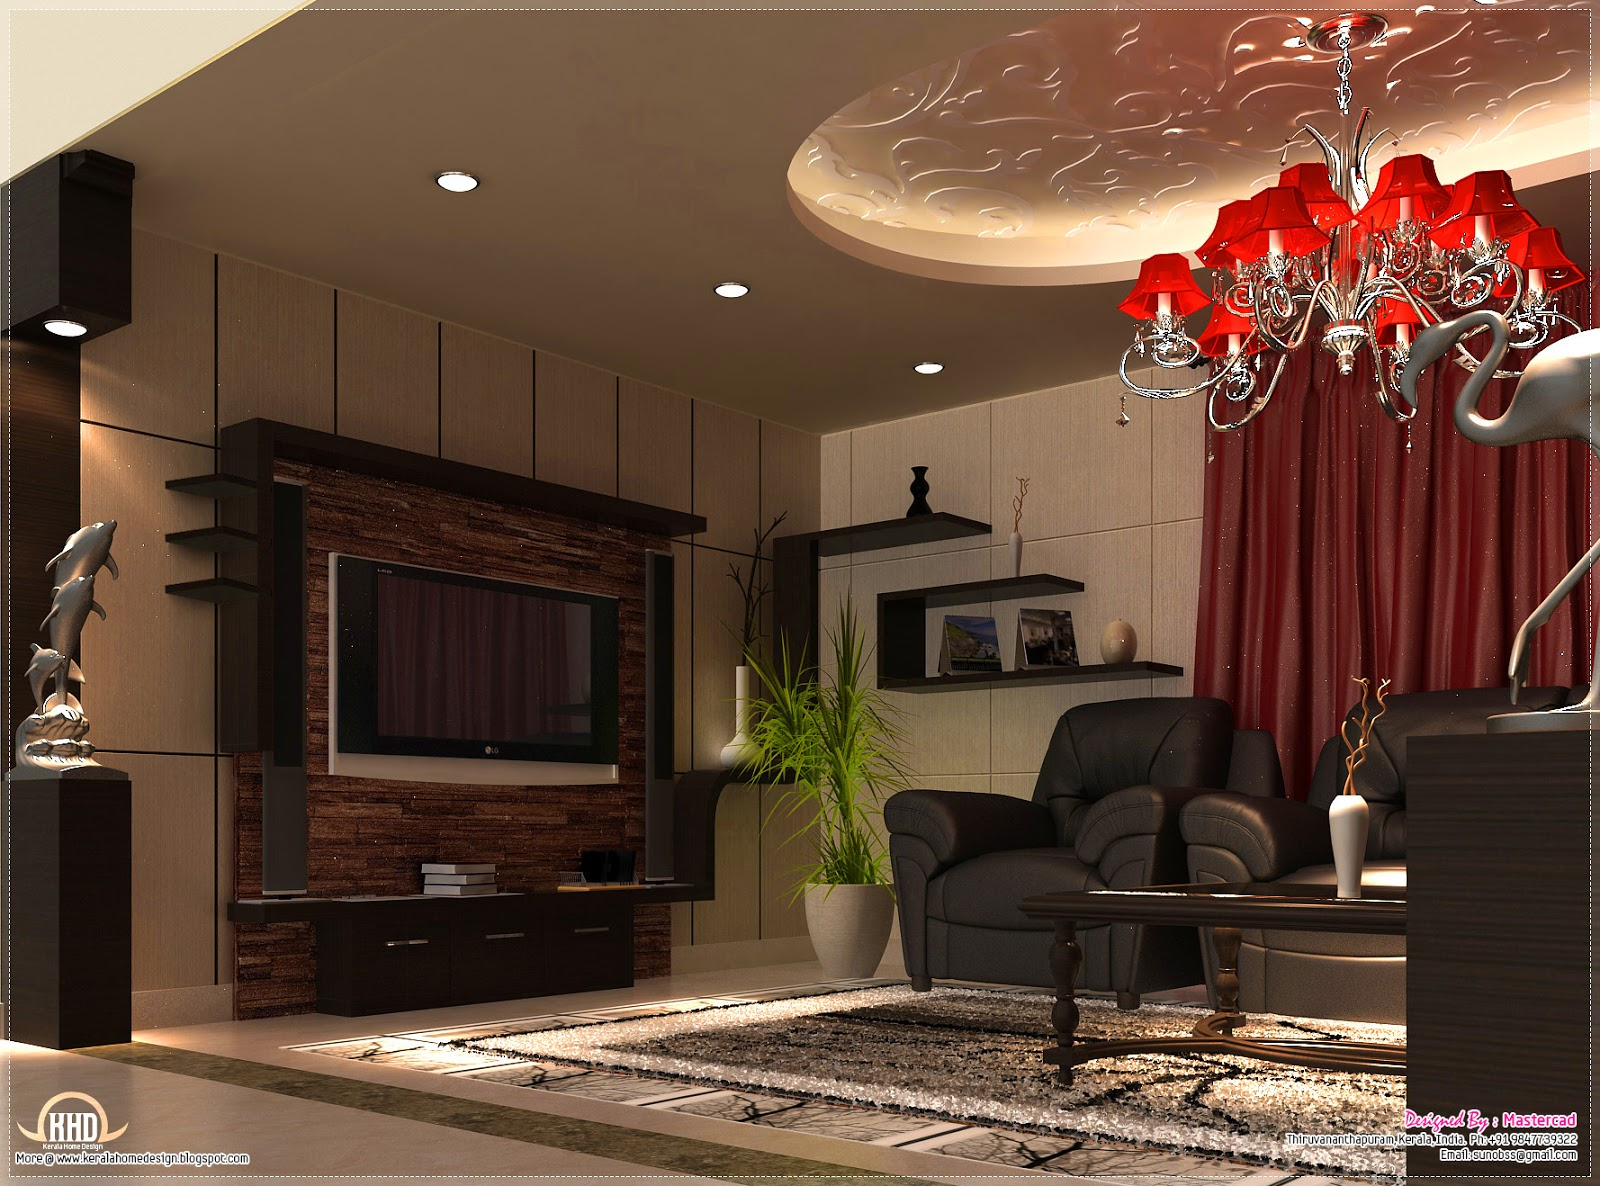 Interior design ideas kerala home design and floor plans for Interior designs idea